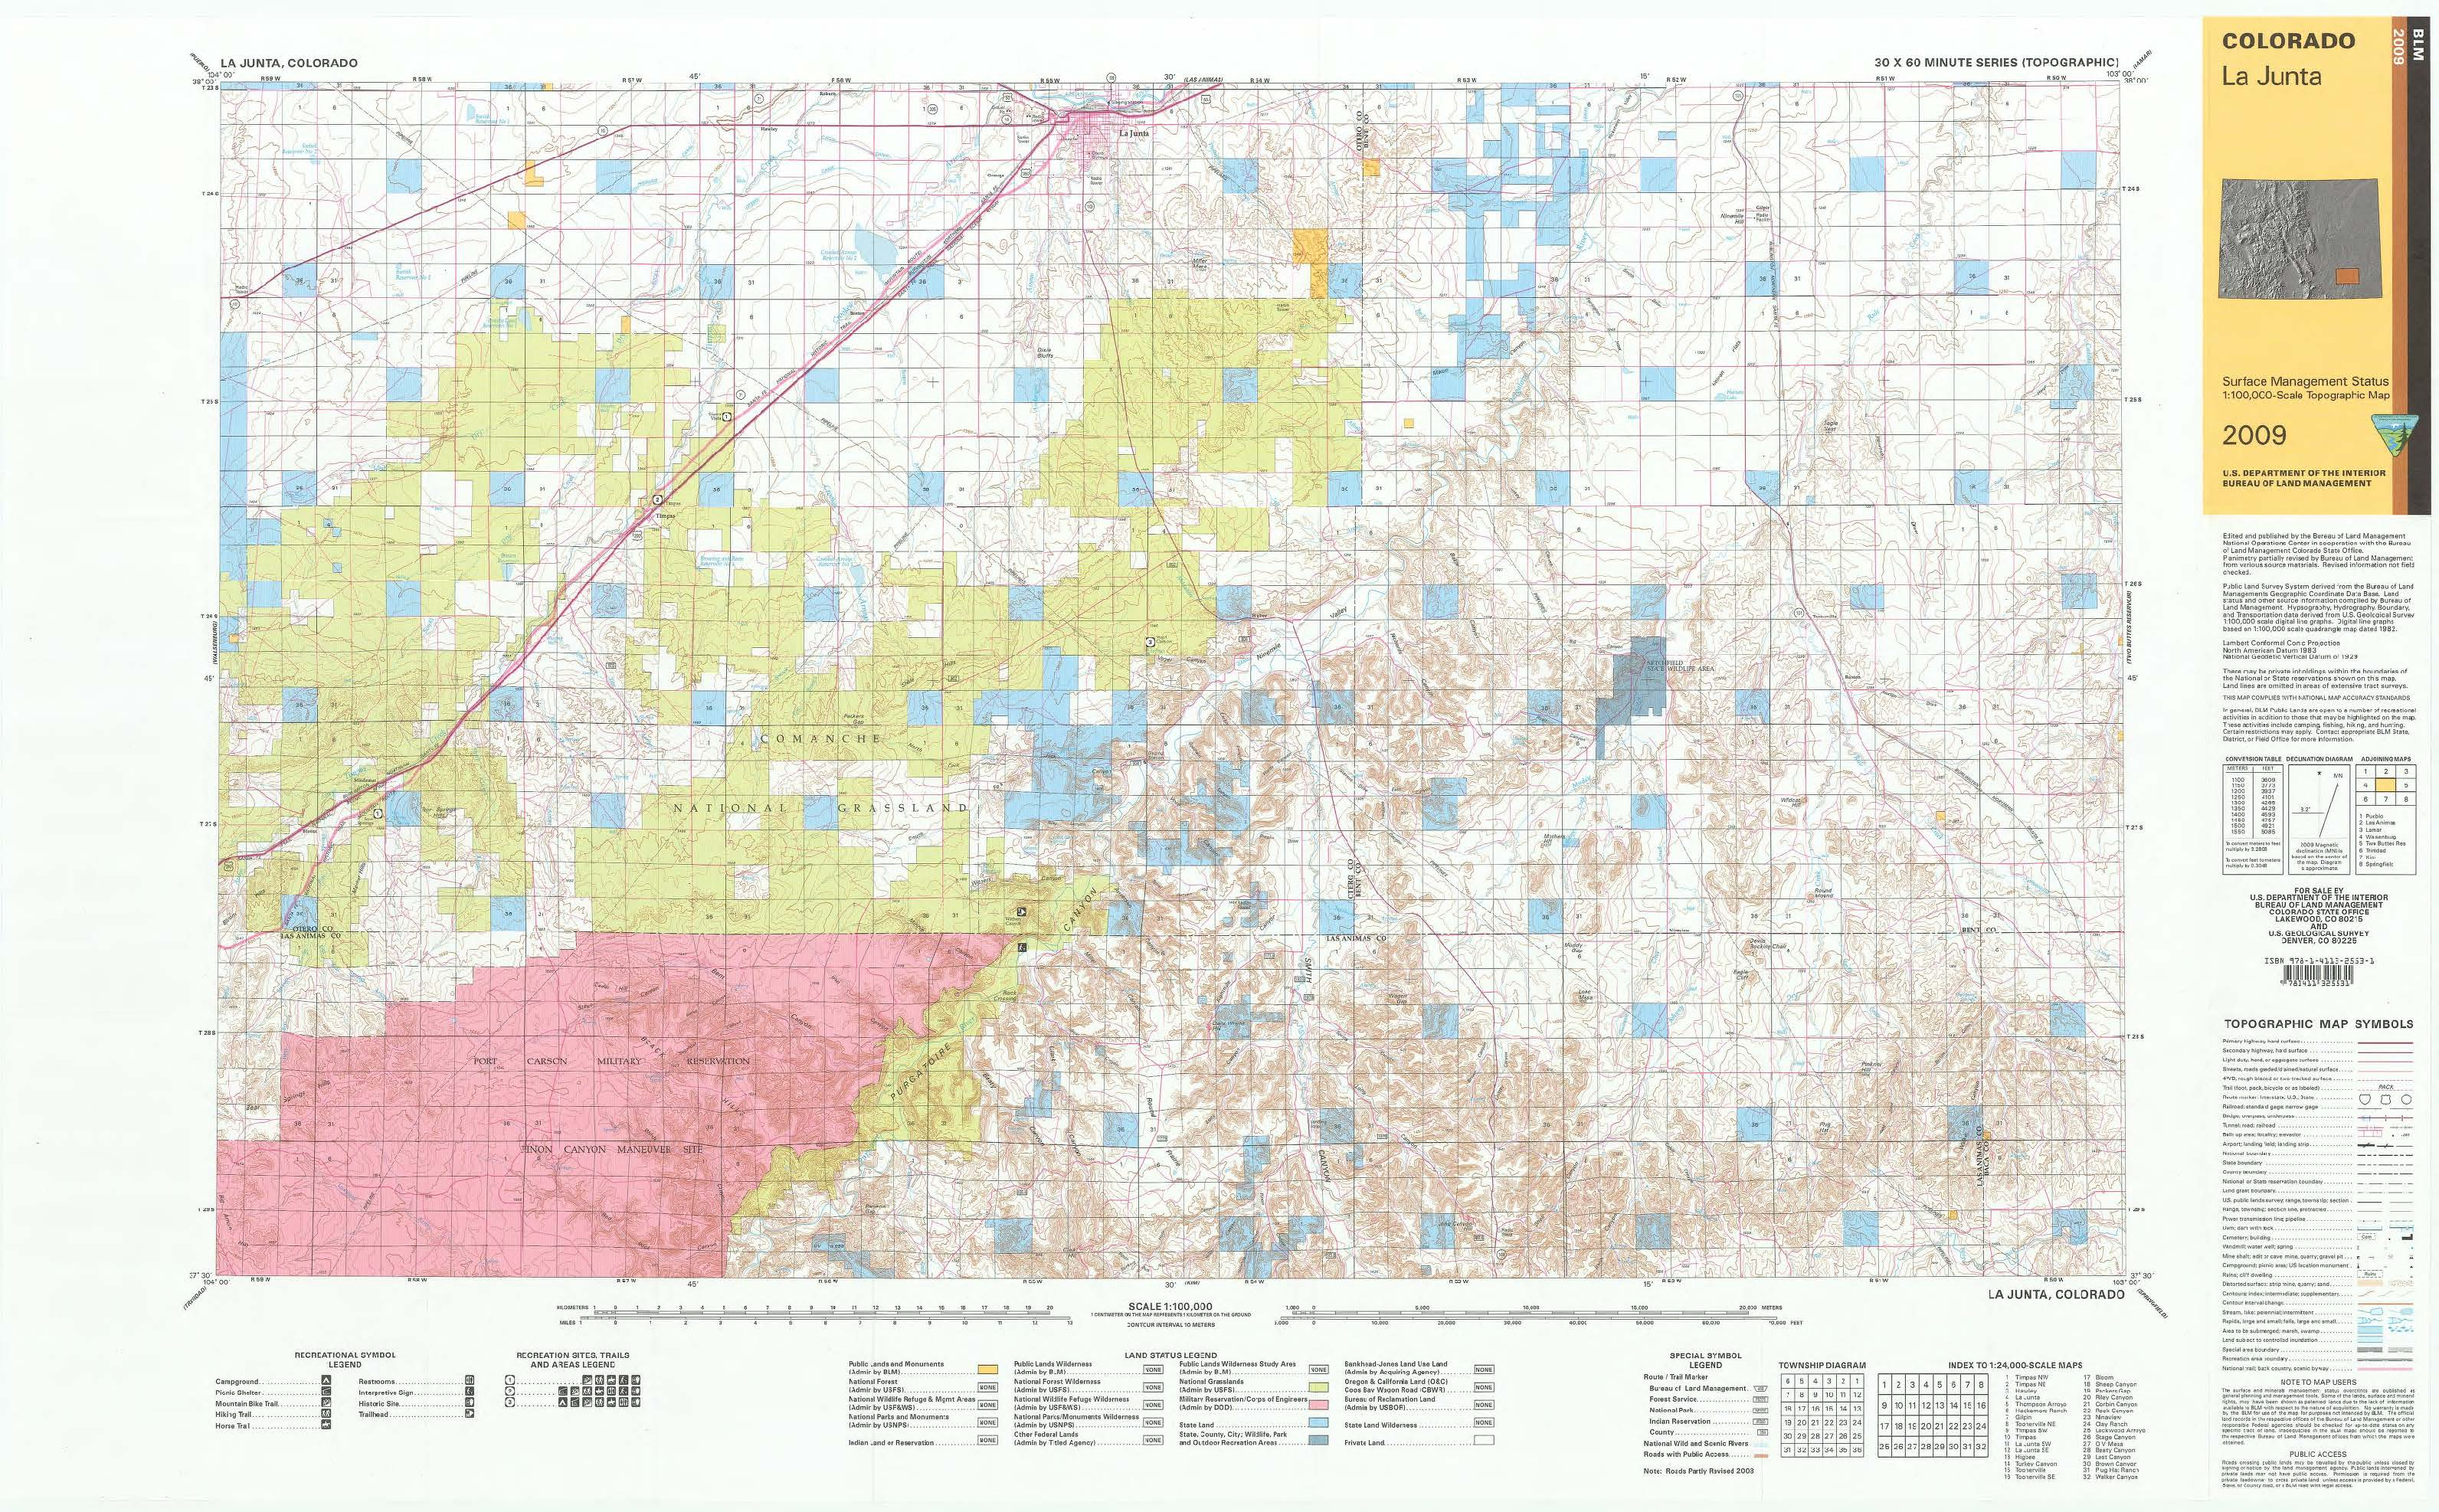 La On Us Map.Co Surface Management Status La Junta Map Bureau Of Land Management